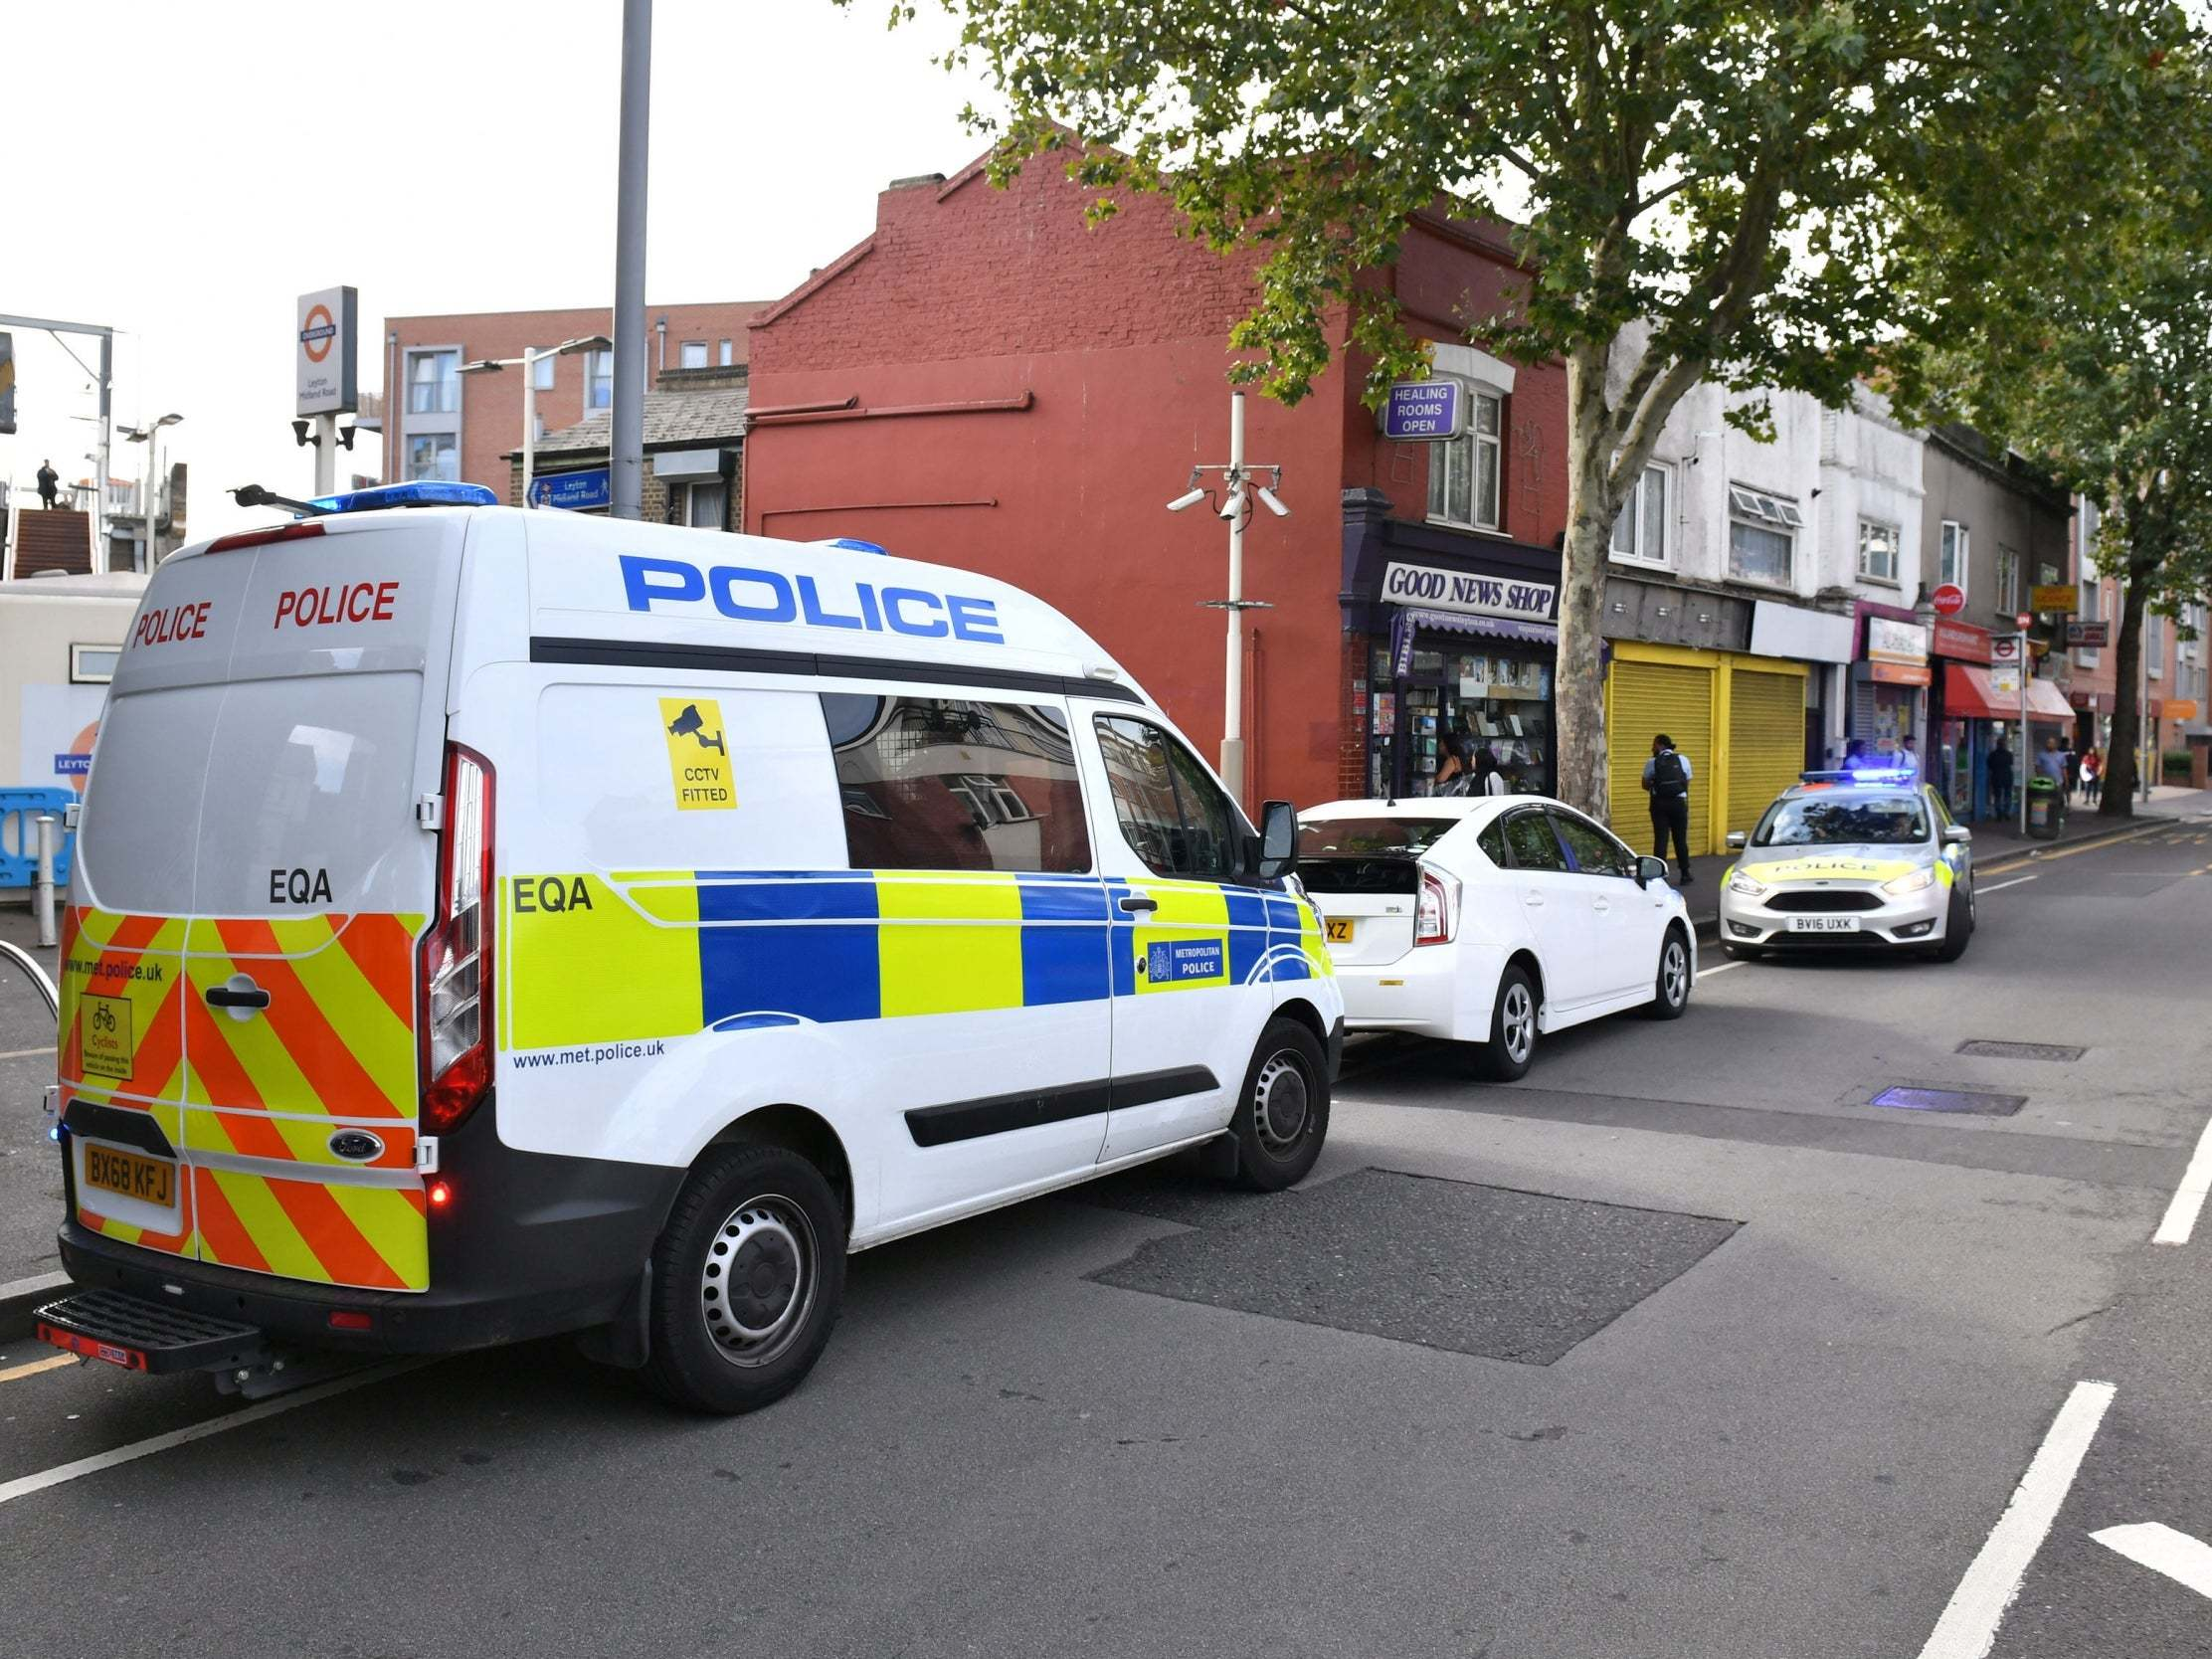 Leyton stabbing: Man charged with attempted murder of police officer in London